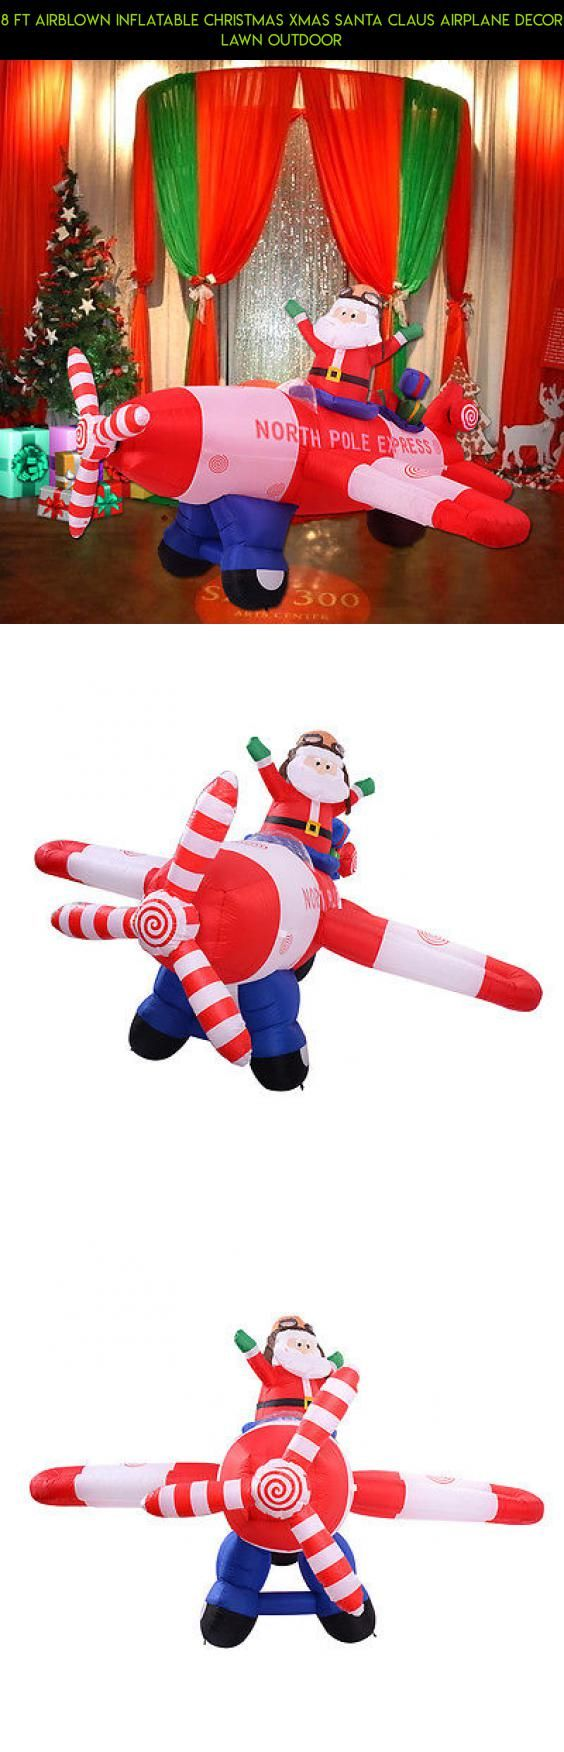 8 Ft Airblown Inflatable Christmas Xmas Santa Claus Airplane Decor Lawn Outdoor #fpv #decor #technology #racing #kit #airplane #drone #products #tech #plans #outdoor #camera #parts #shopping #gadgets